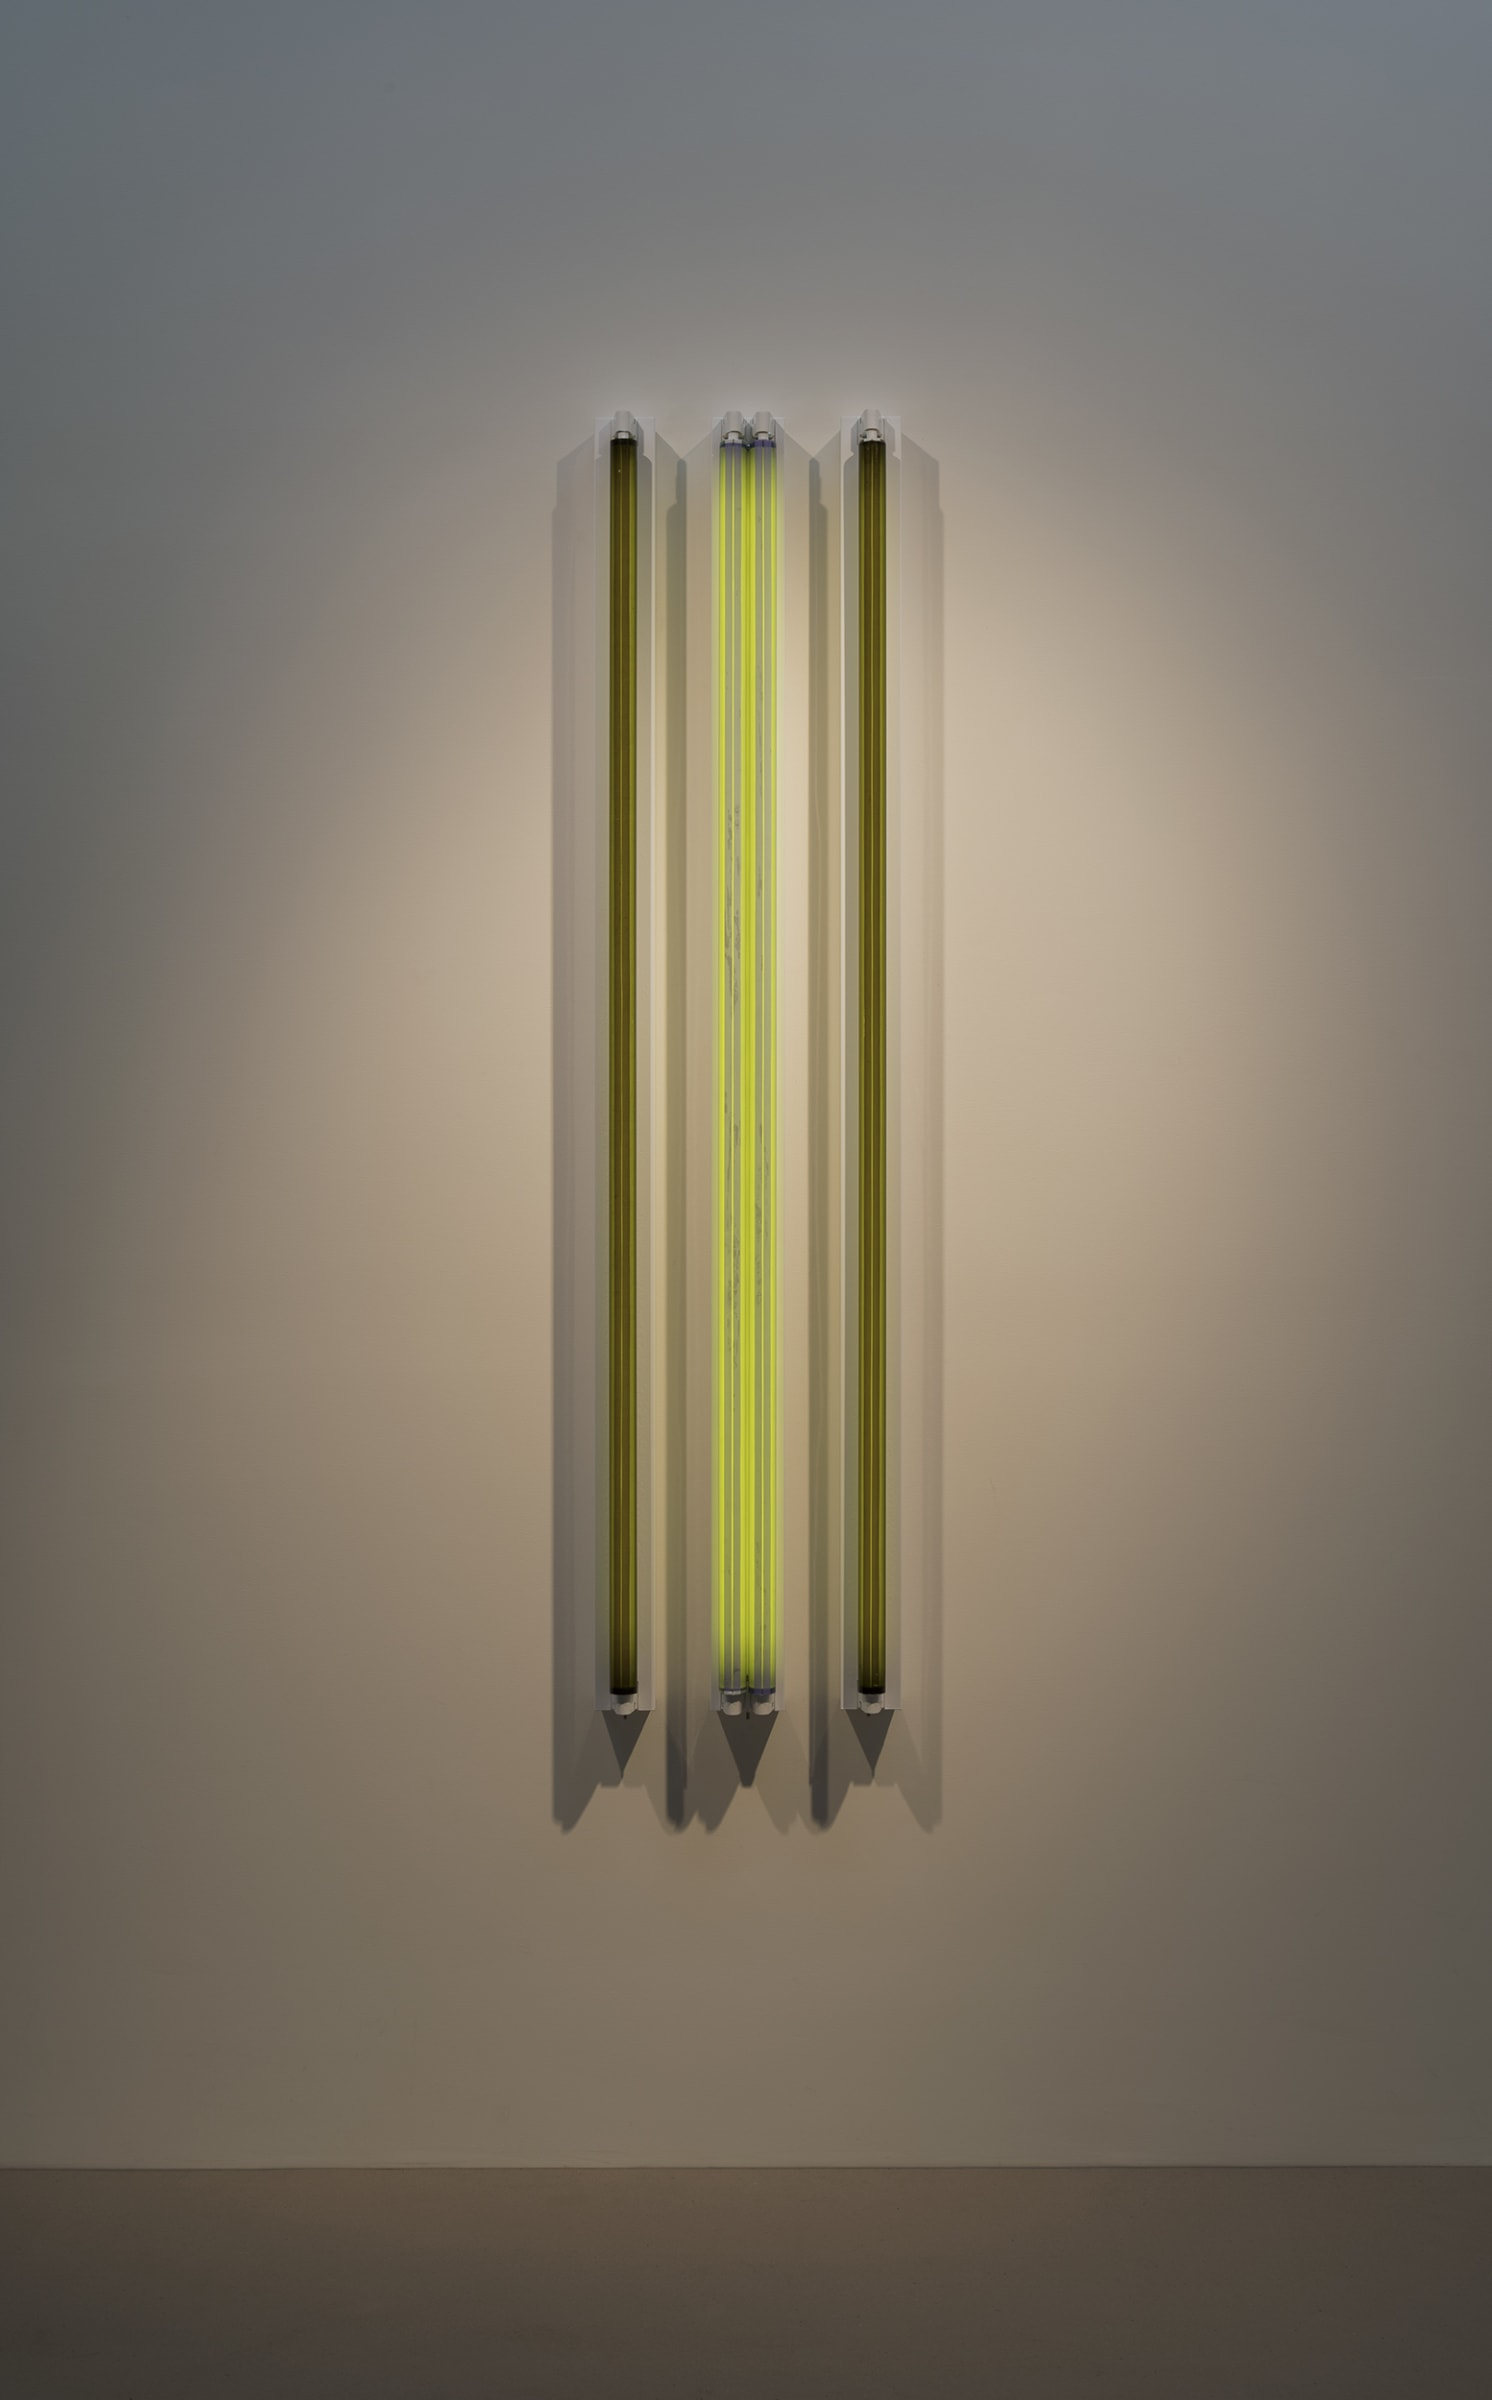 "<span class=""link fancybox-details-link""><a href=""/exhibitions/160/works/artworks14395/"">View Detail Page</a></span><div class=""artist""><strong>ROBERT IRWIN</strong></div><div class=""title""><em>#3x 6'D Four Fold</em>, 2016</div><div class=""medium"">light, shadow, reflection, color<br>Dijon / Mineral green + 702 / Dijon</div><div class=""dimensions"">182.9 x 41 x 11 cm<br>72 1/8 x 16 1/8 x 4 in</div>"